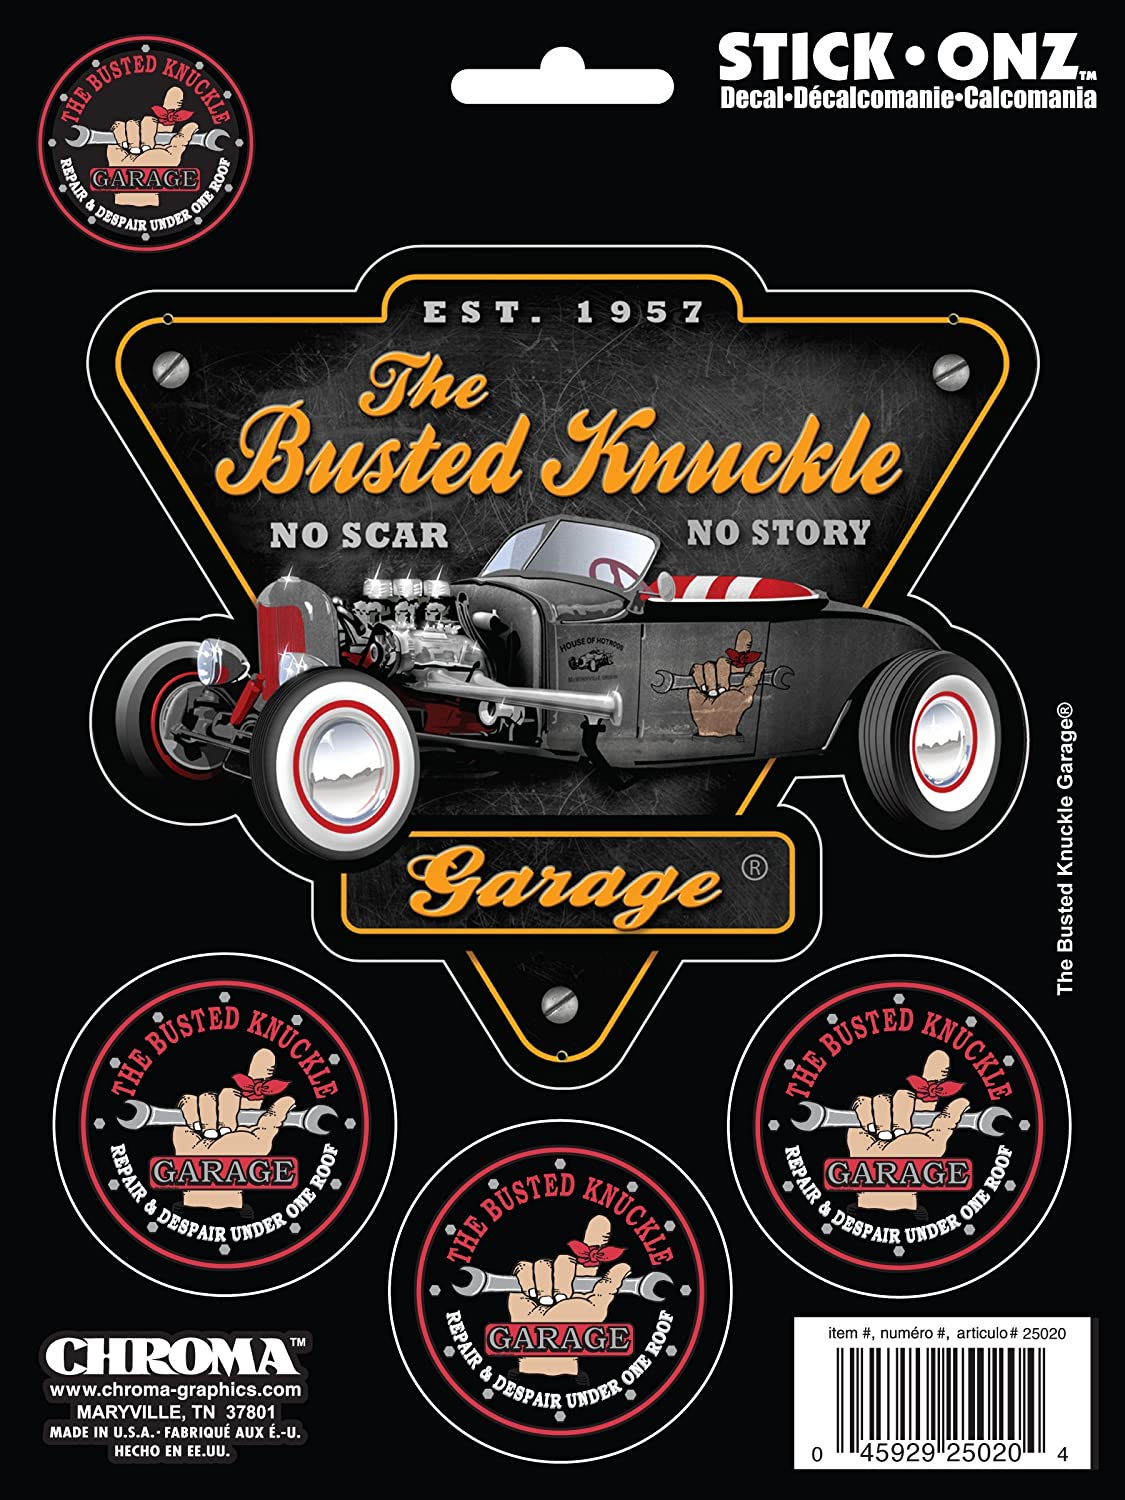 CHROMA 25020 Busted Knuckle No Scar No Story 4 Piece Stick Onz Decal